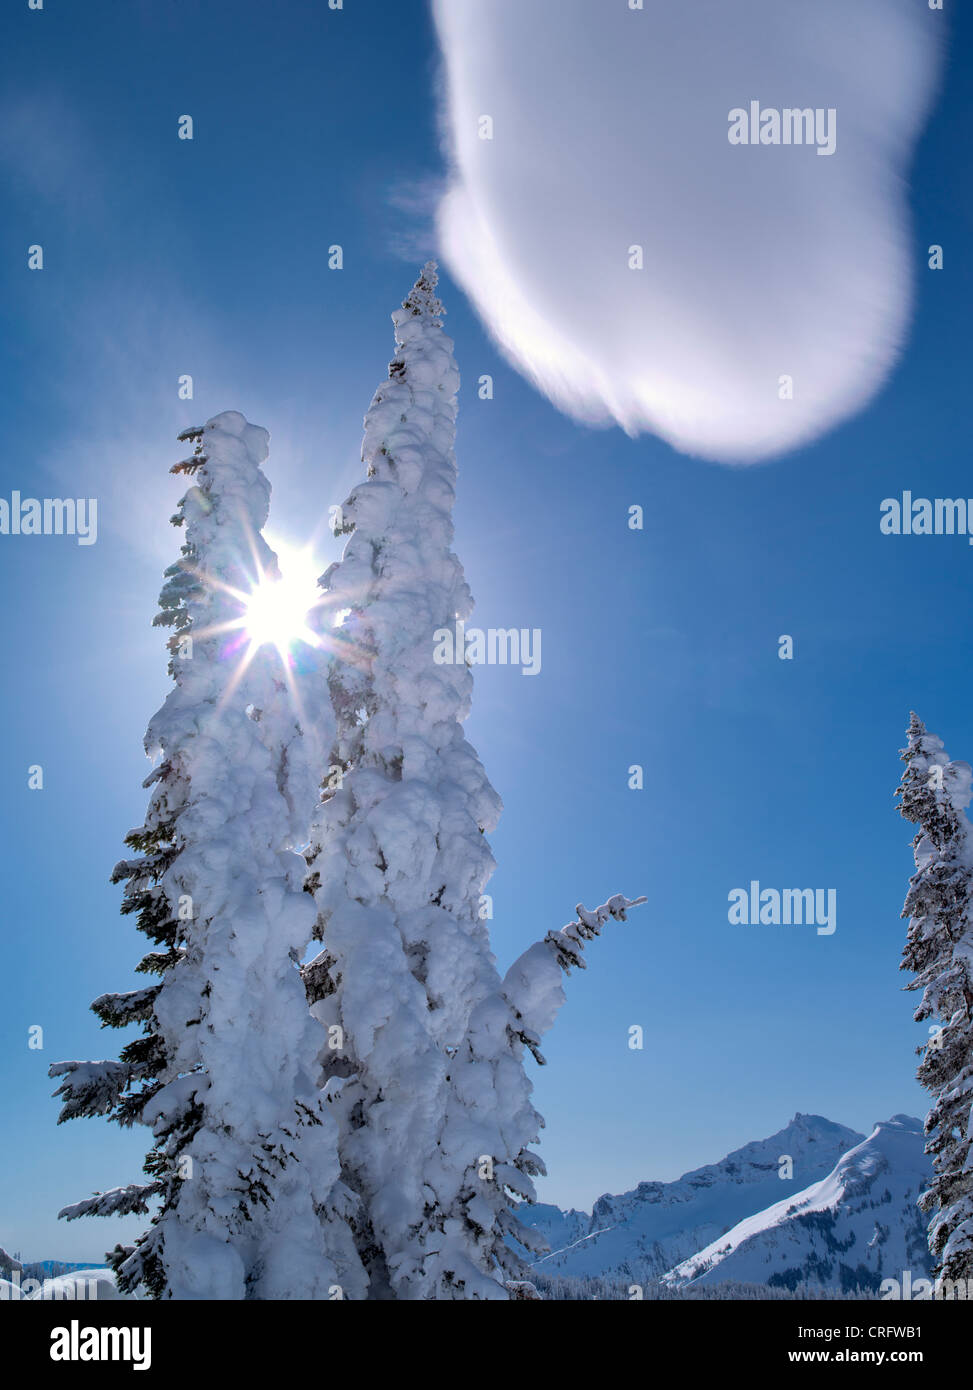 Snow covered trees with sunburst and cloud. Mt. Rainier National Park, Washington - Stock Image